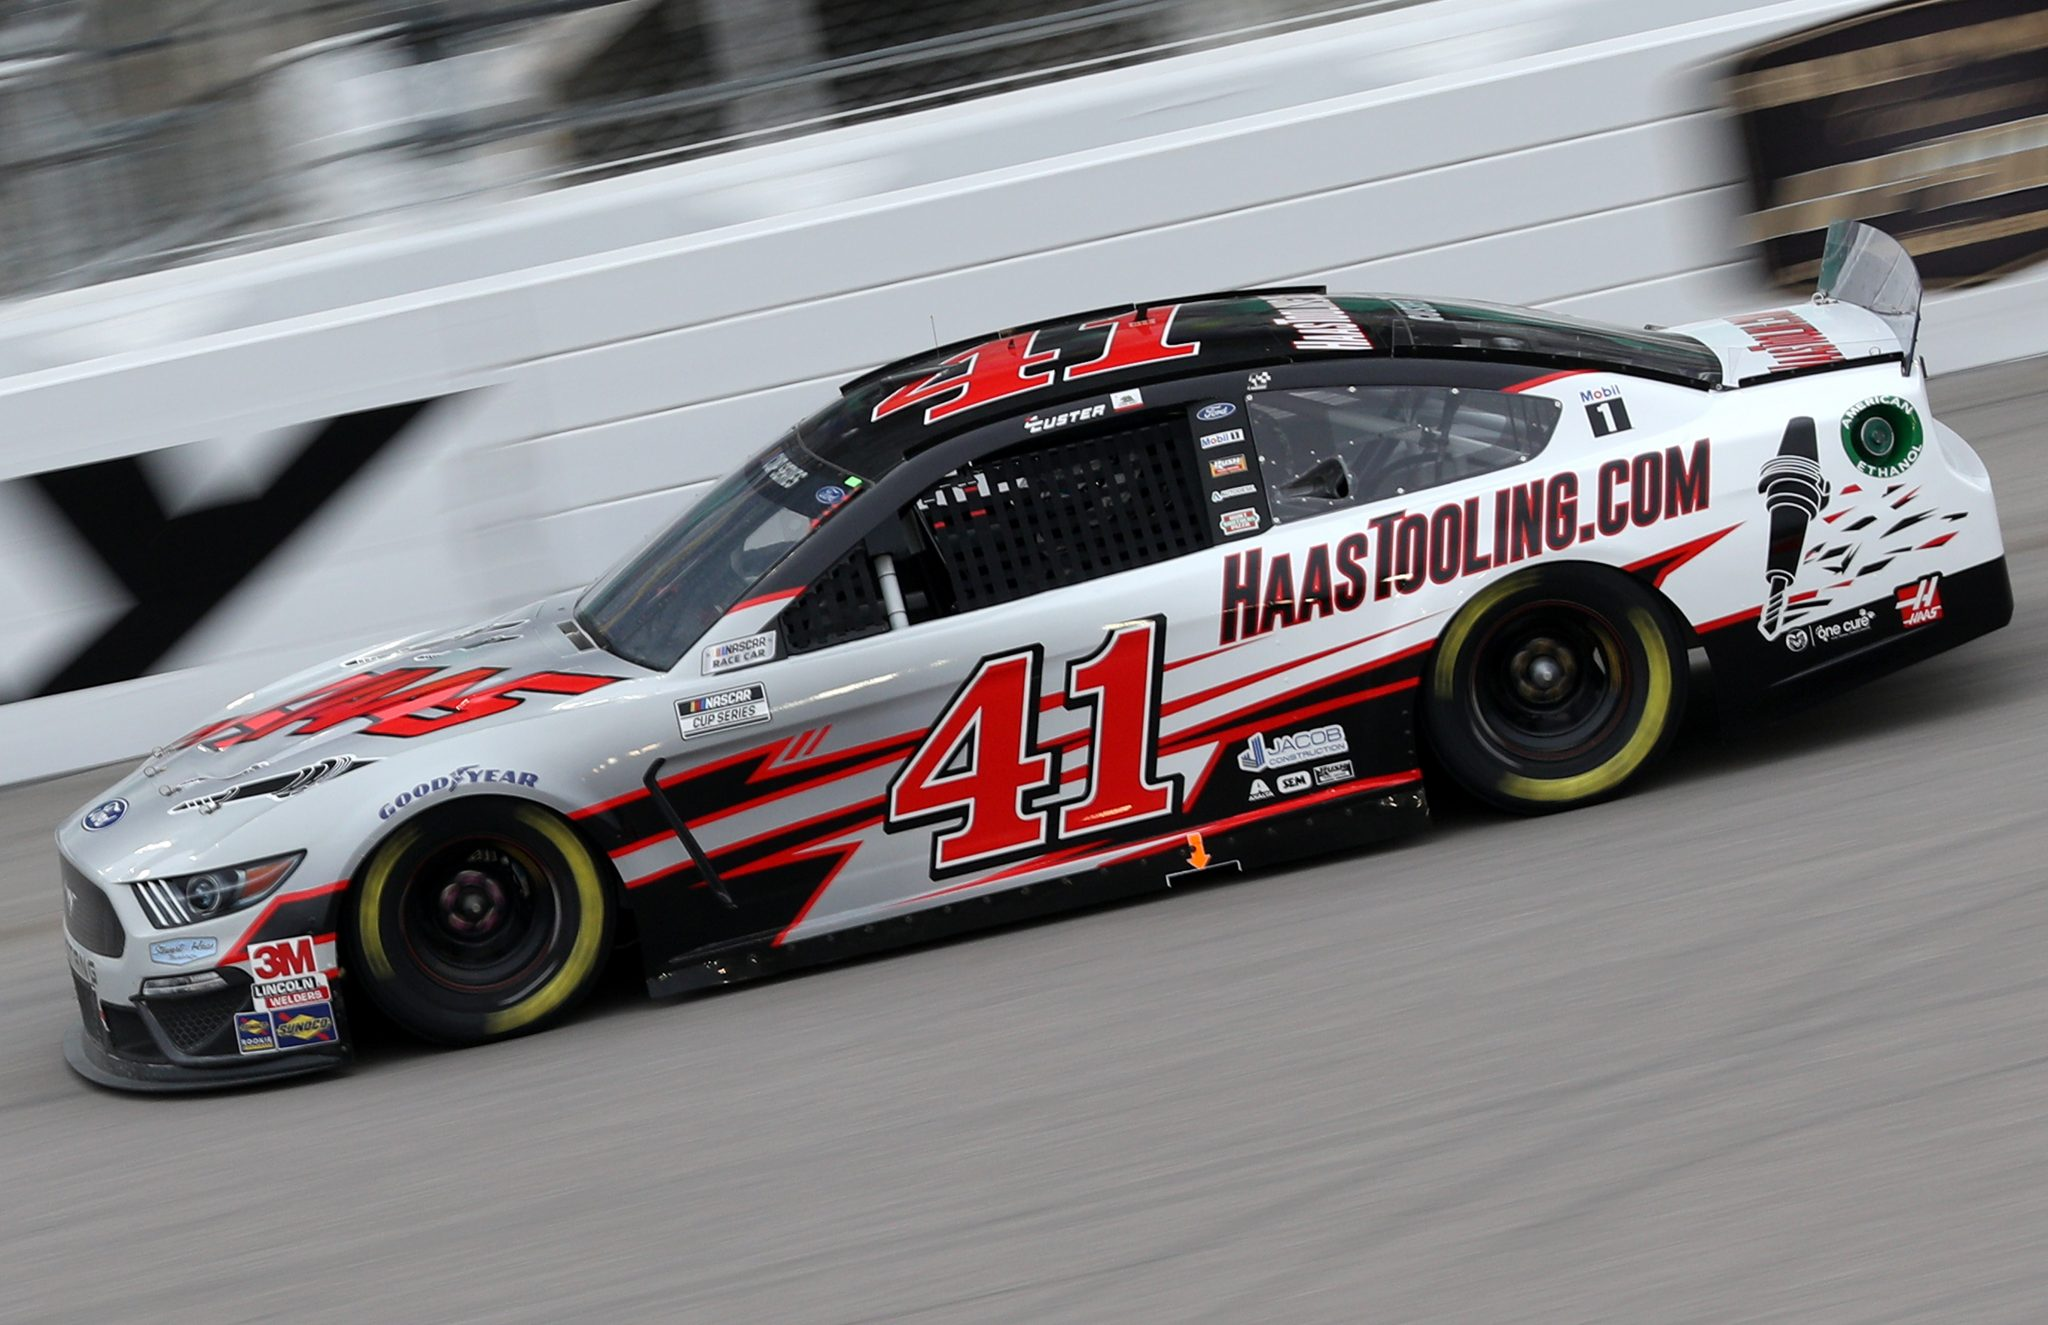 KANSAS CITY, KANSAS - OCTOBER 18: Cole Custer, driver of the #41 HaasTooling.com Ford, drives during the NASCAR Cup Series Hollywood Casino 400 at Kansas Speedway on October 18, 2020 in Kansas City, Kansas. (Photo by Chris Graythen/Getty Images) | Getty Images